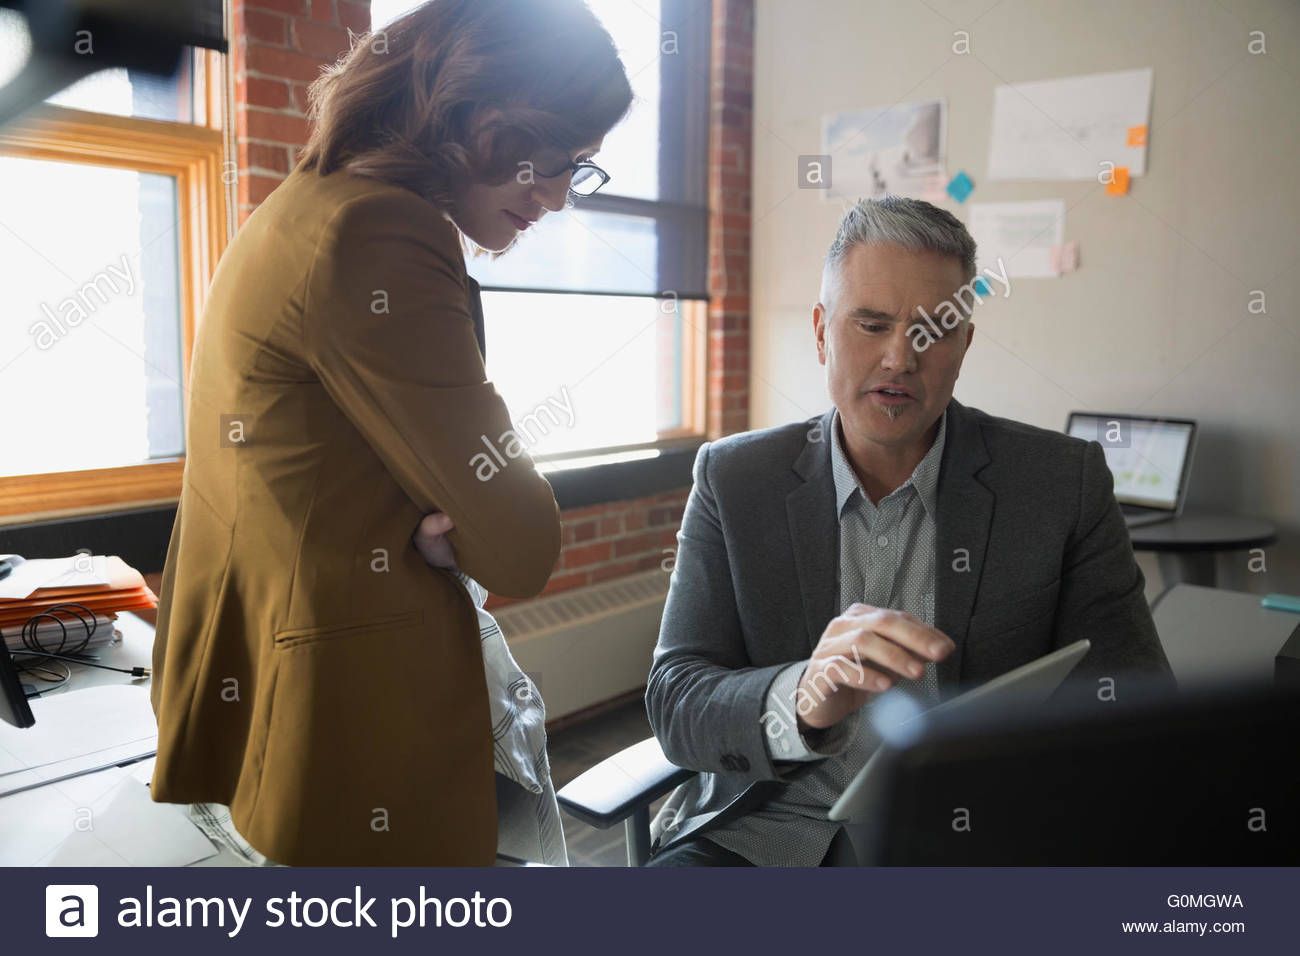 Businessman and businesswoman using digital tablet office desk Photo Stock